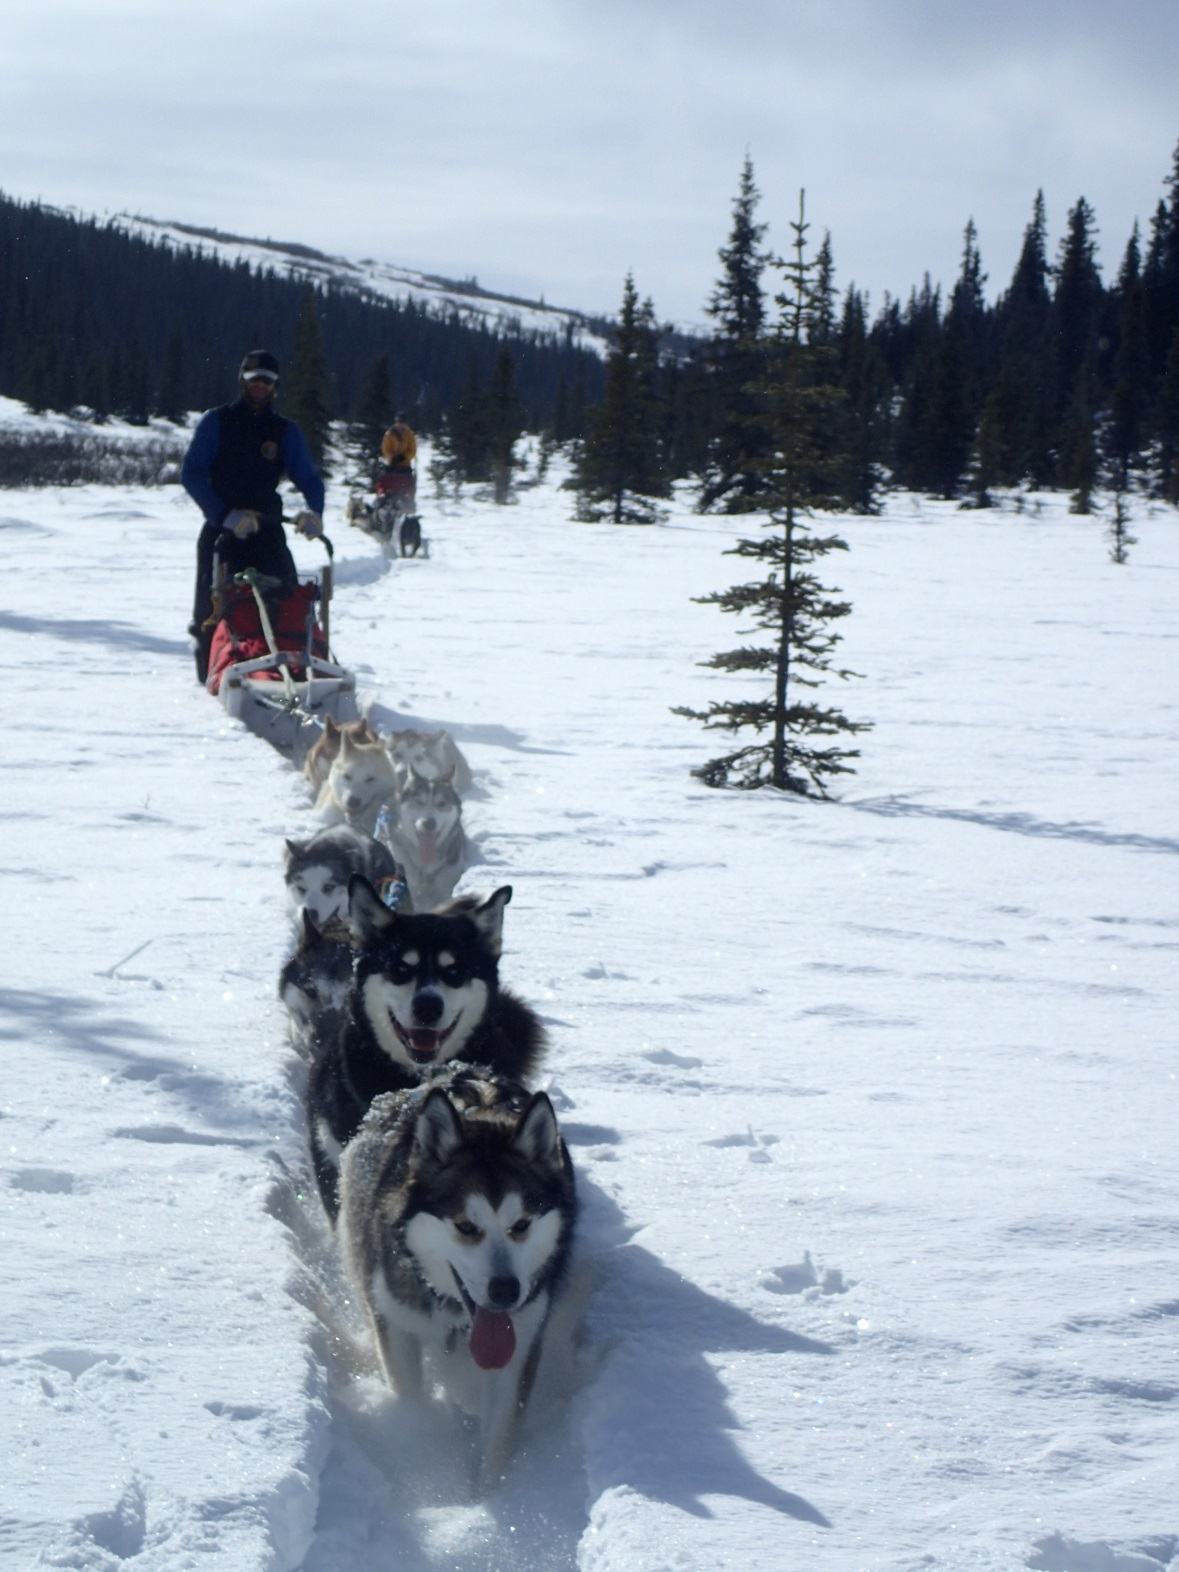 team of sled dogs pulling a sled through snow